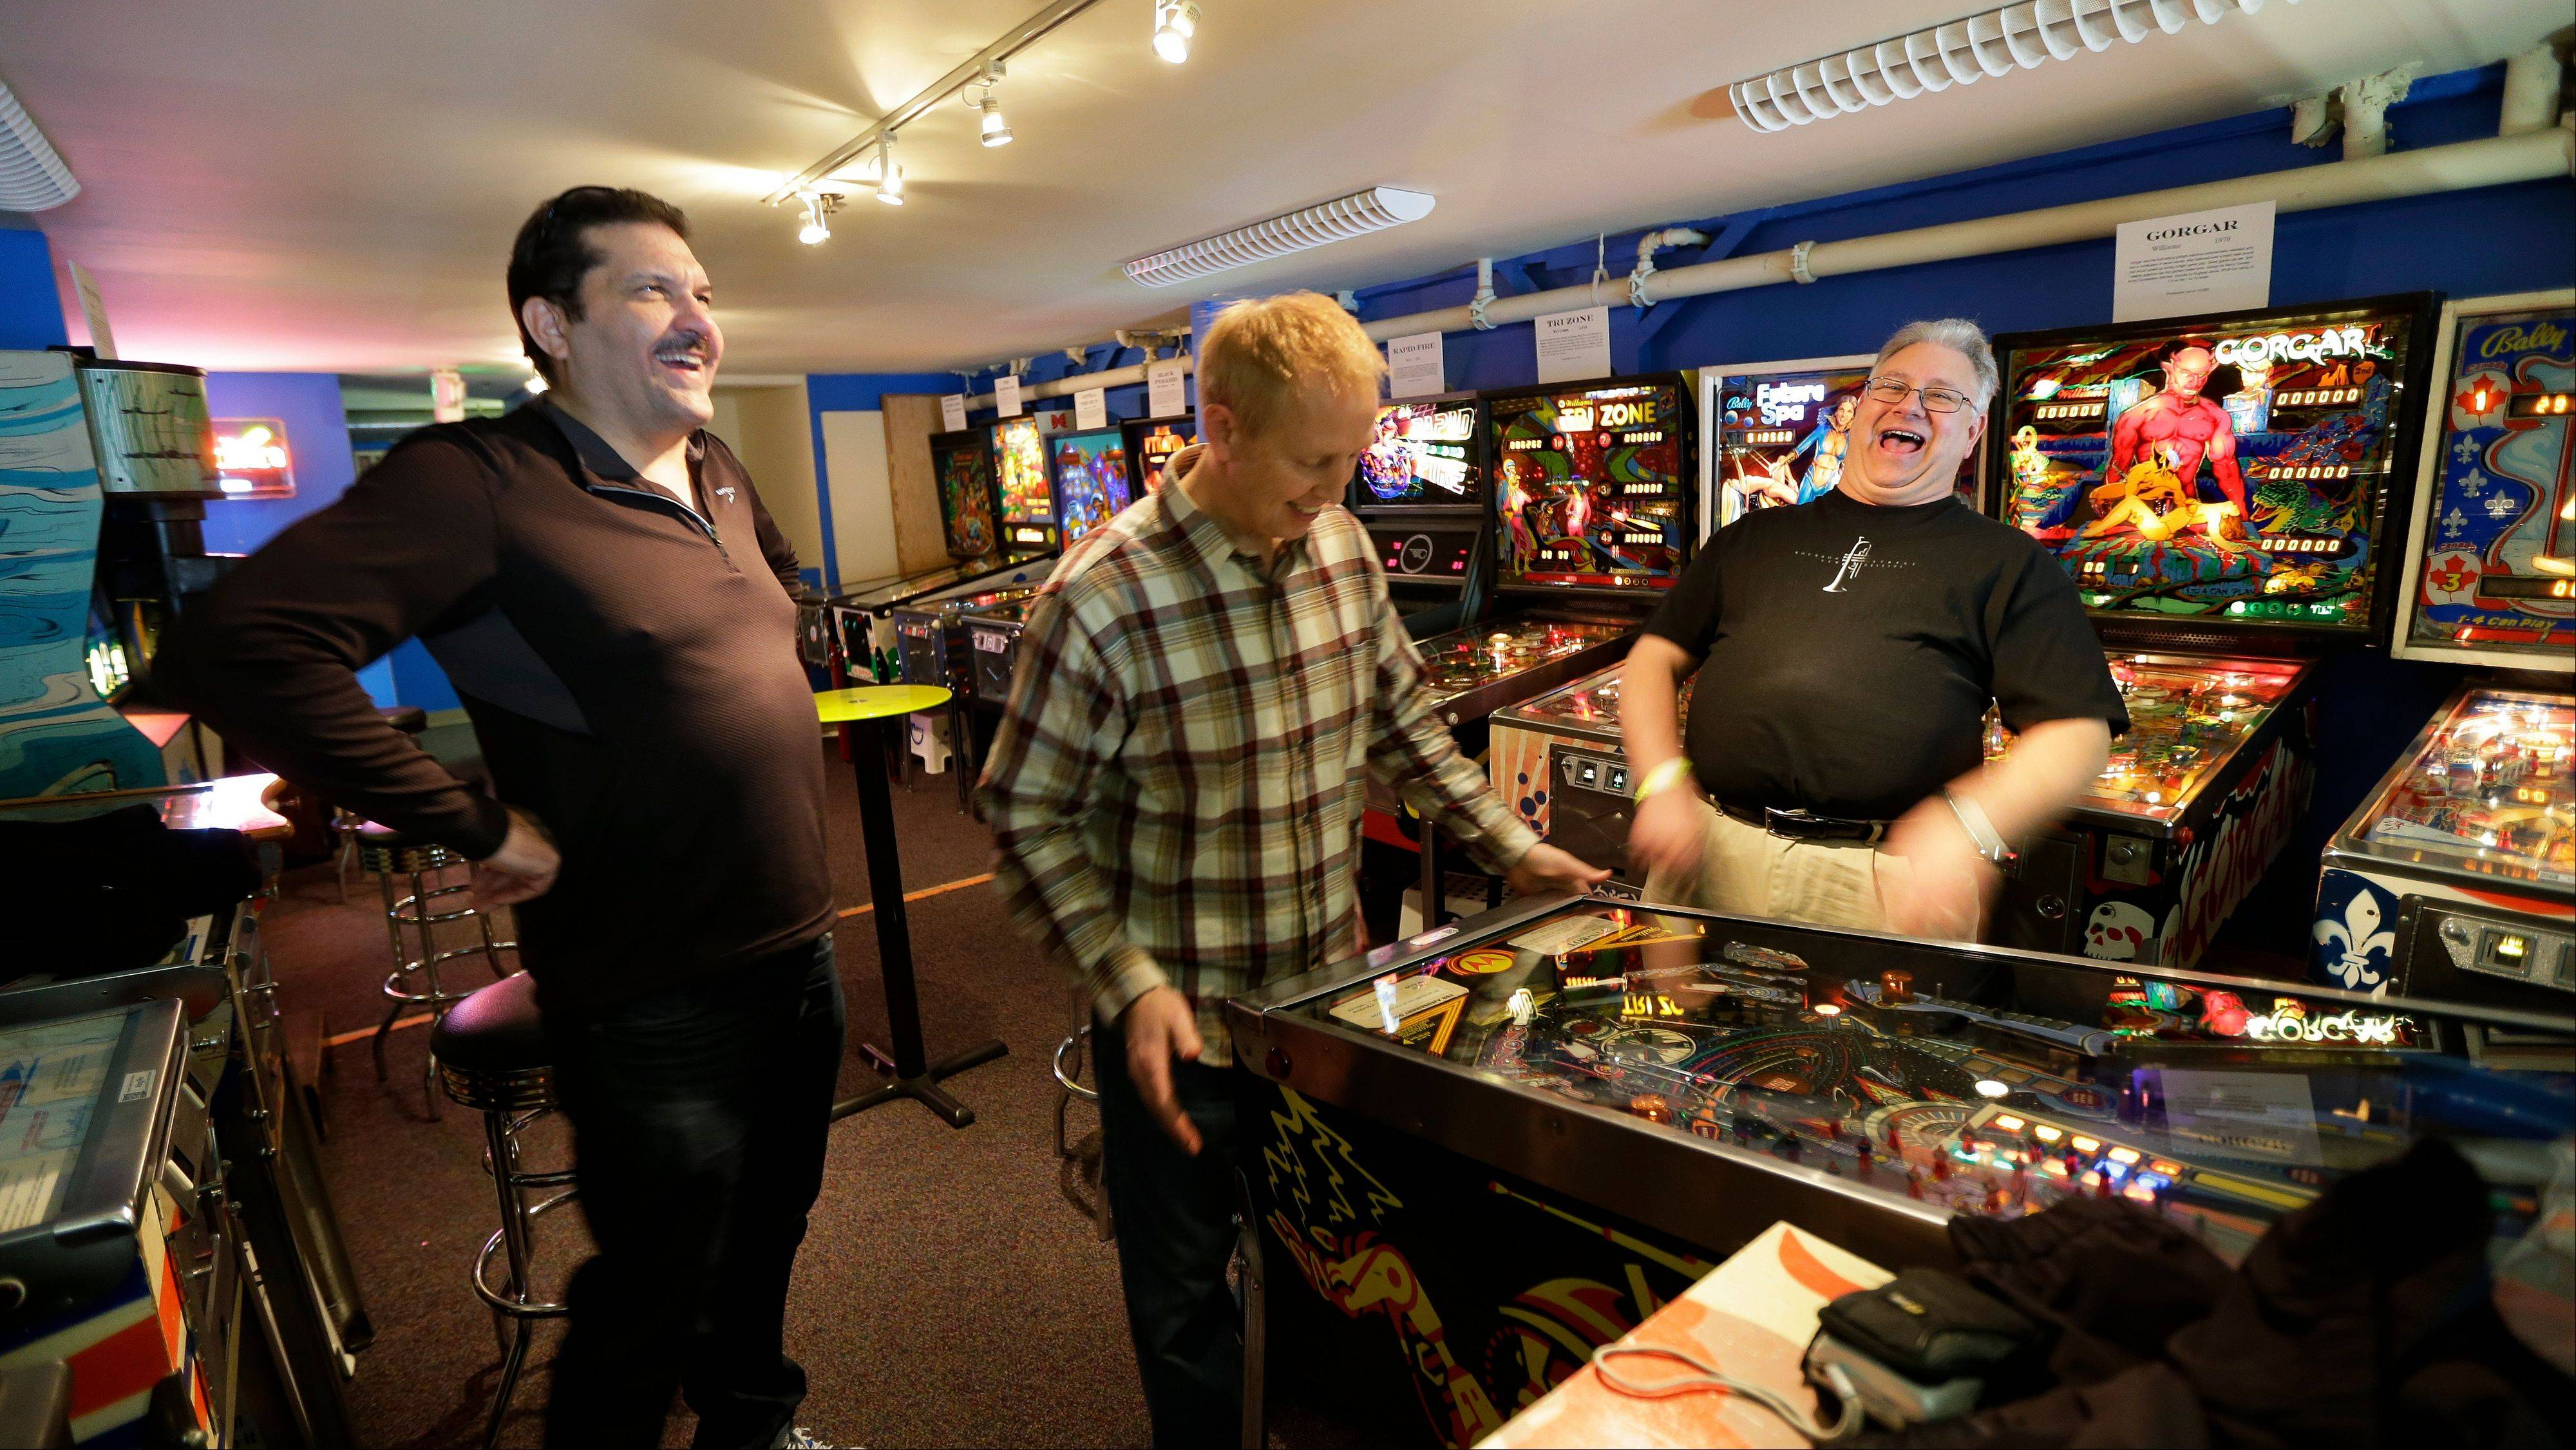 Out-of-state visitors Jeff Goldsmith, left, Jim Lindquist and Dave Socha play the PIN BOT pinball machine, which was released in 1986, as they visit the Seattle Pinball Museum.